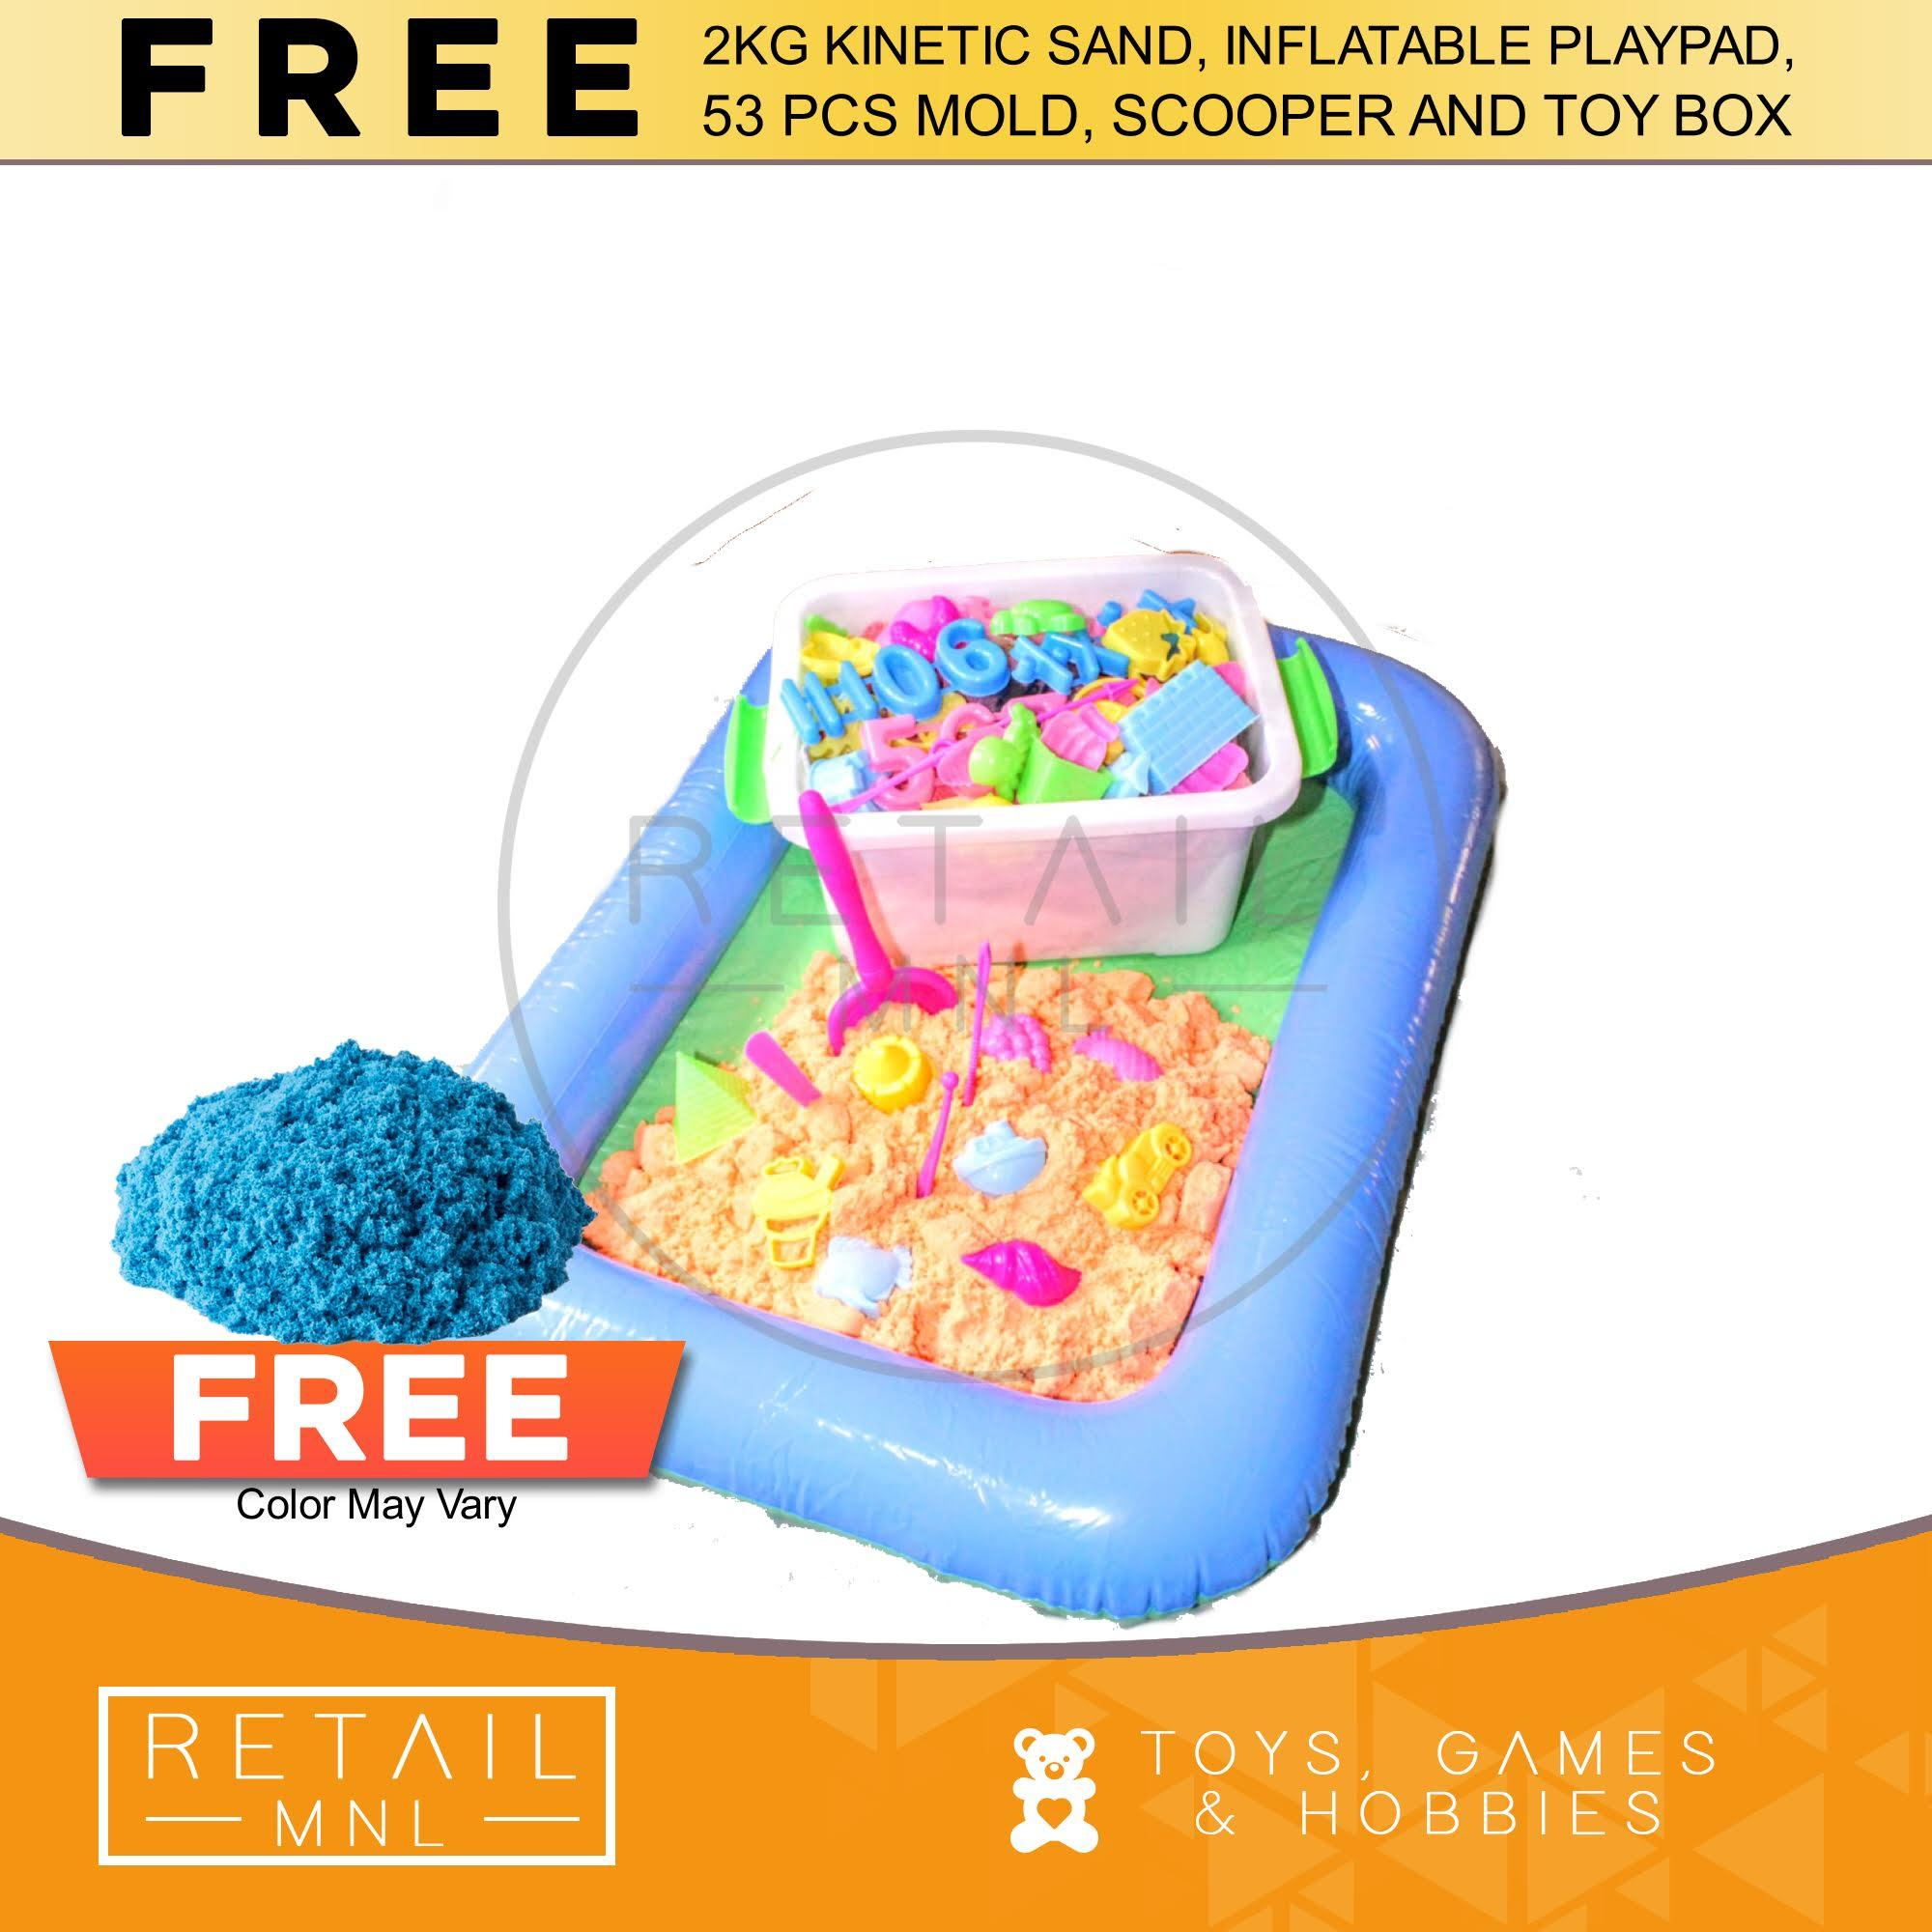 Retailmnl Kinetic Motion Sand Playset With Molds And Inflatable Pool By Retail Mnl.